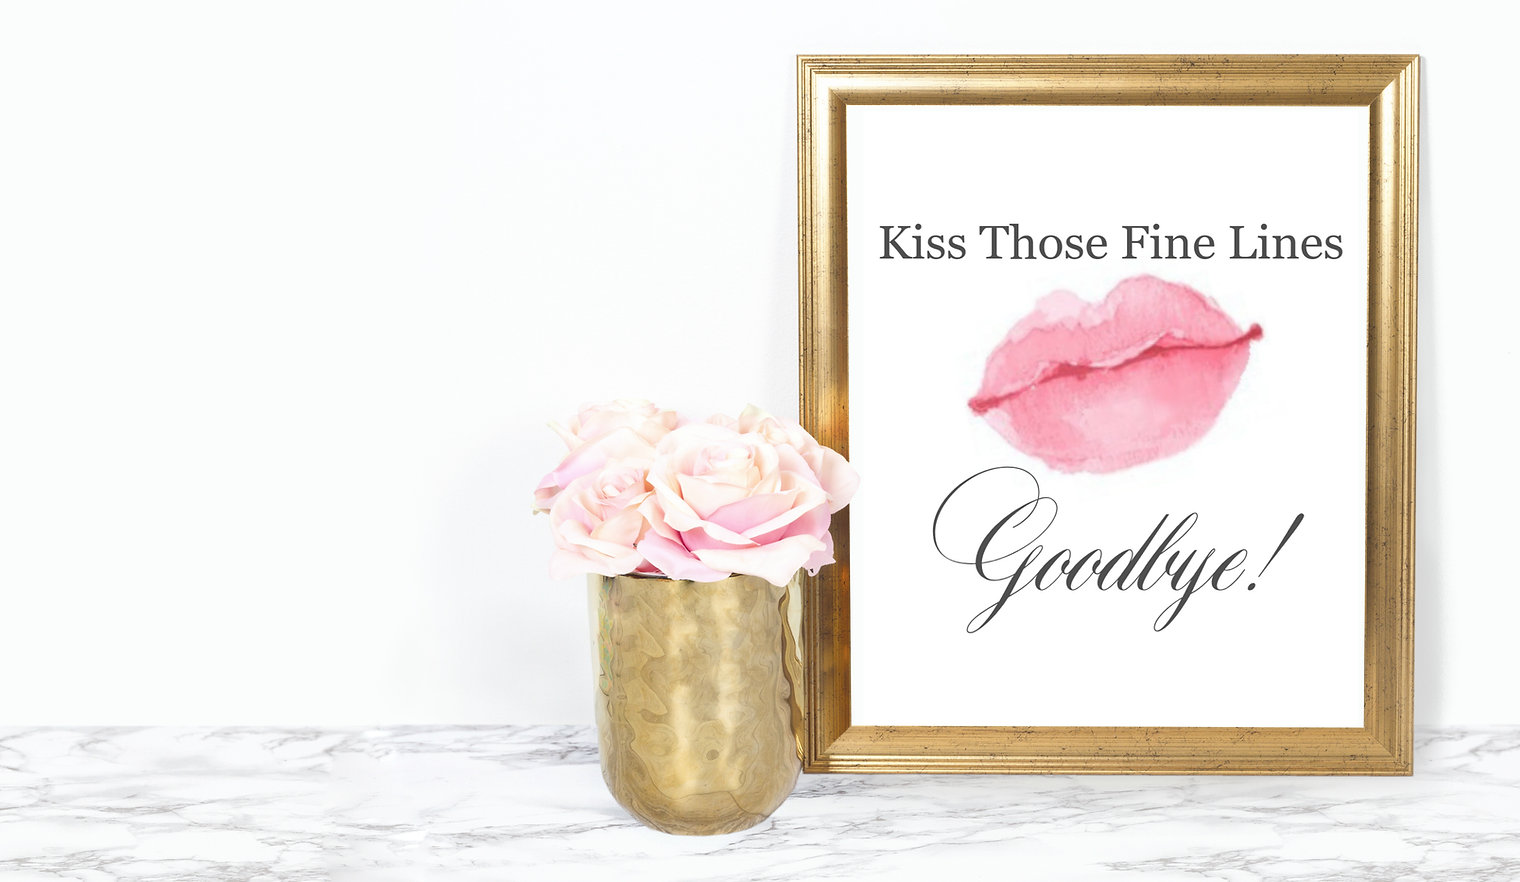 Gold Frame White Space - with kiss pic 8